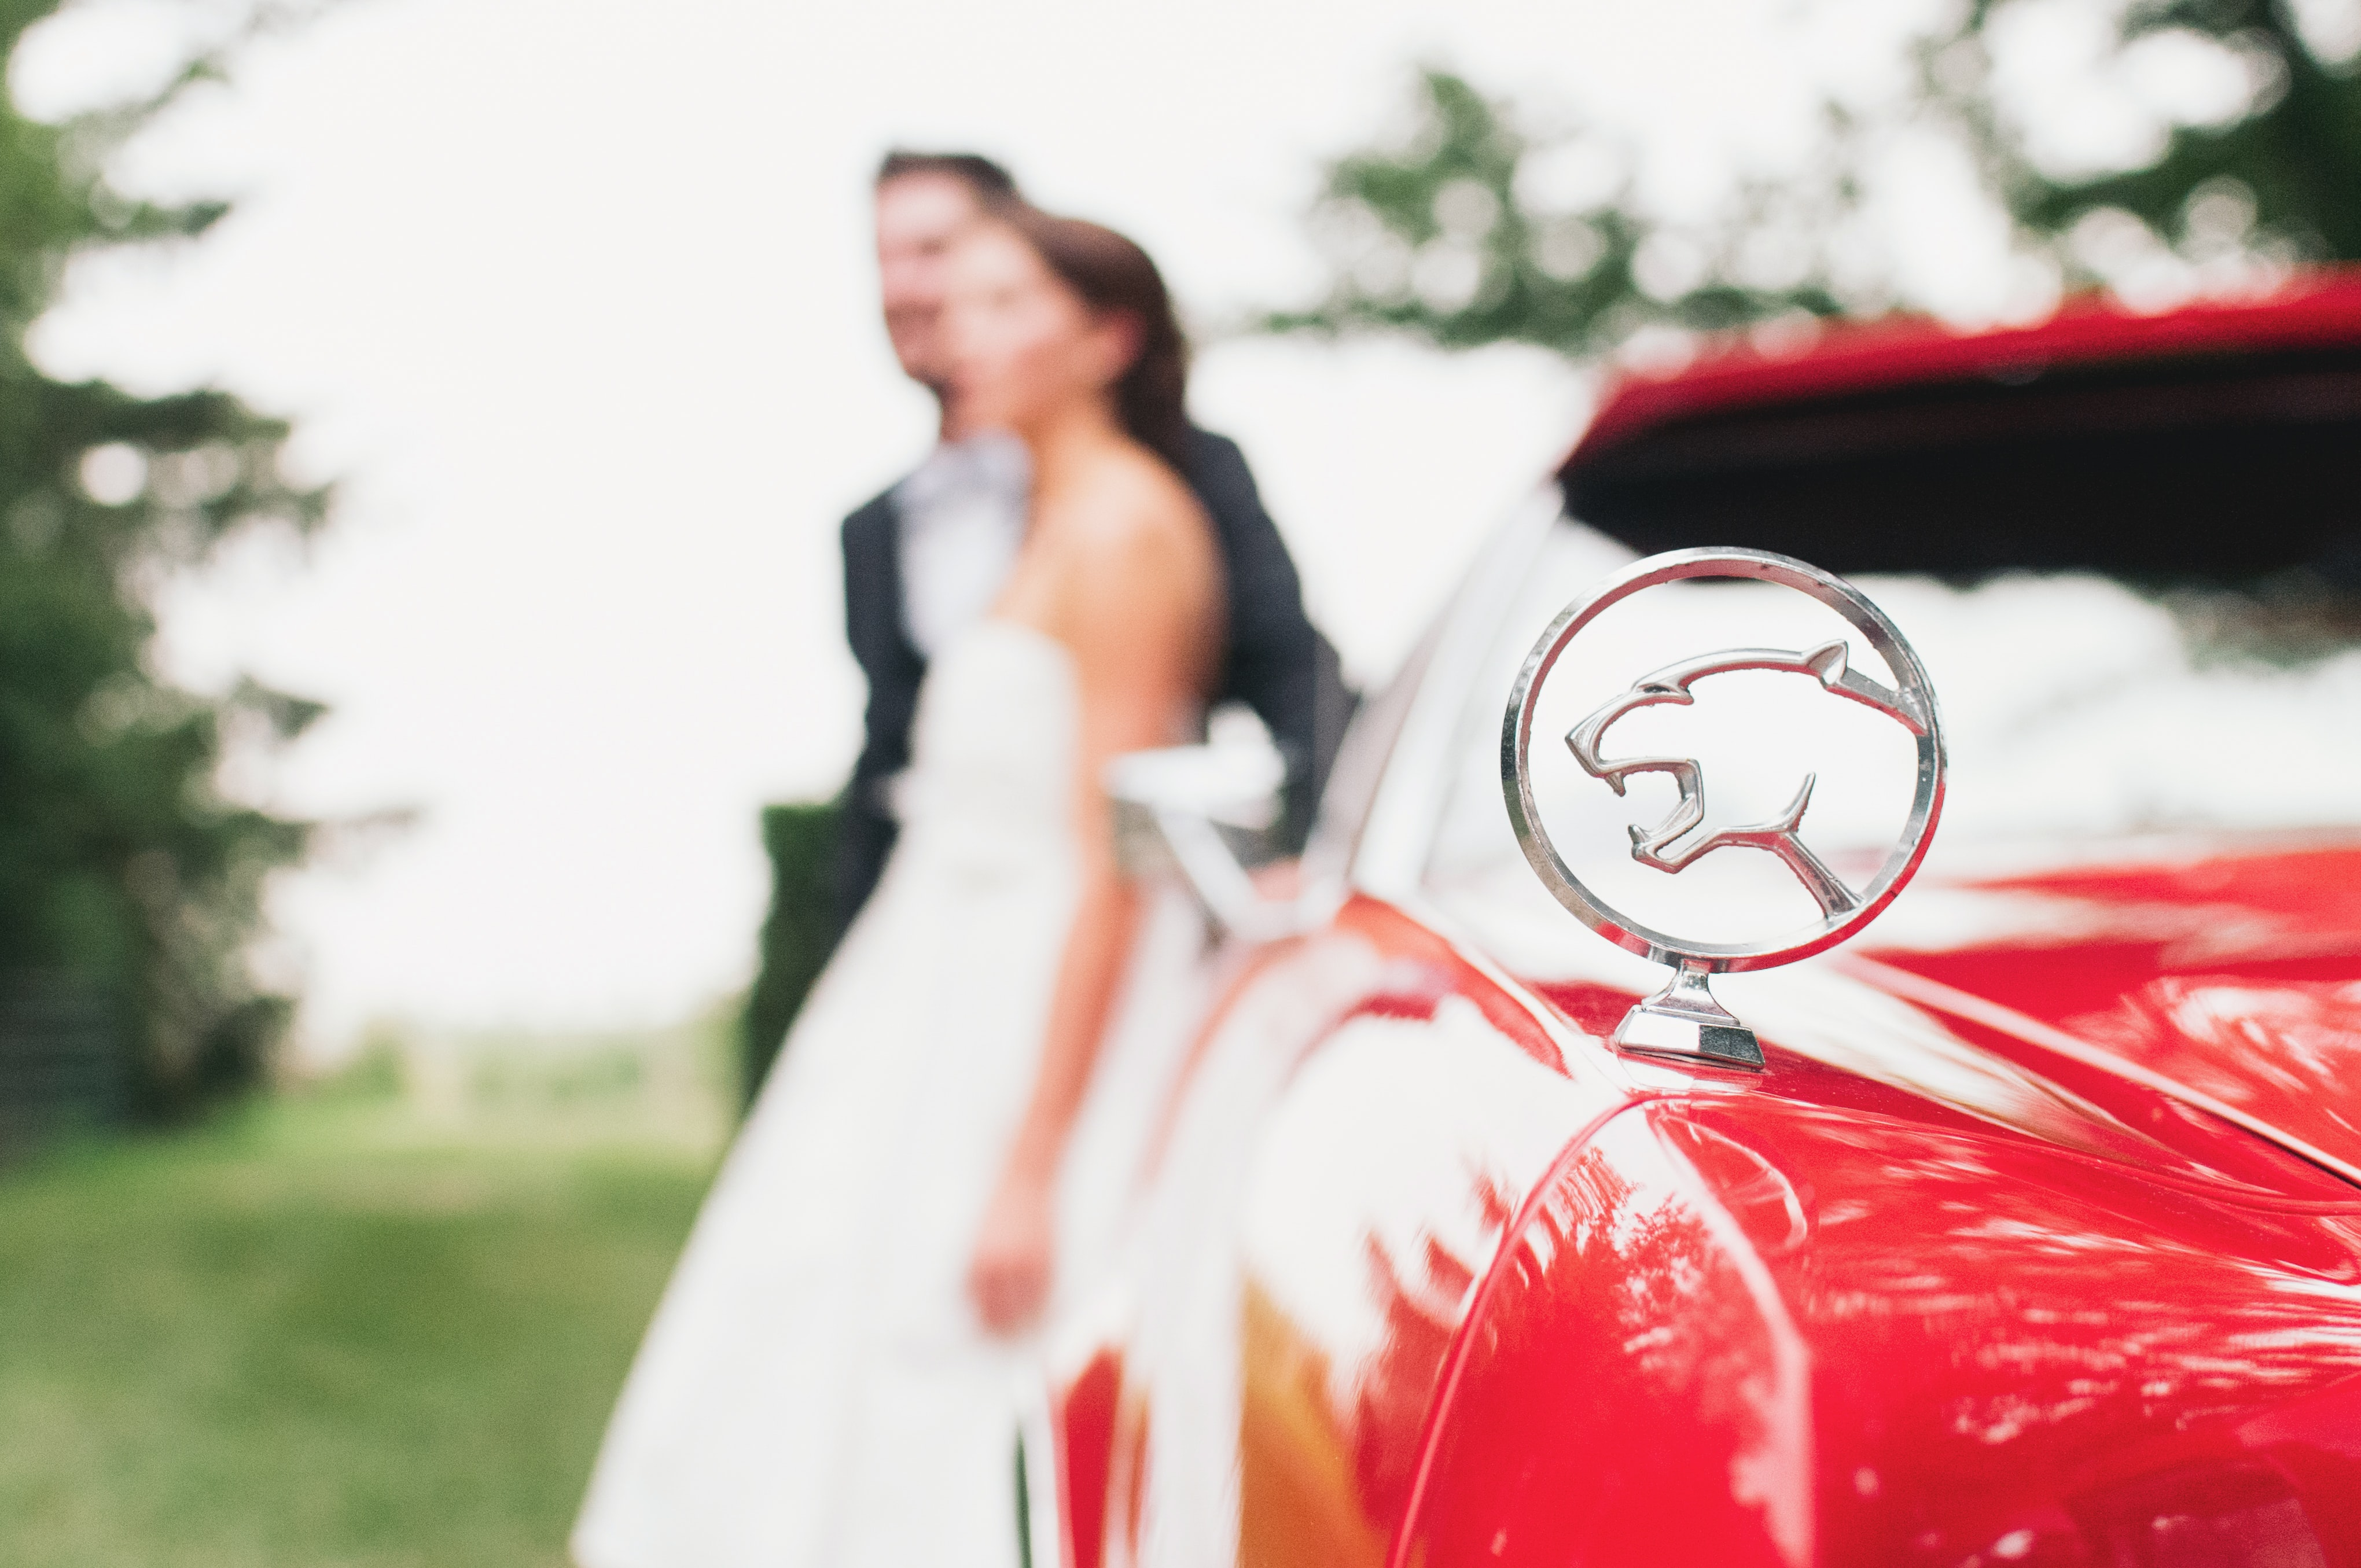 Vintage red jaguar car with married couple in background out of focus